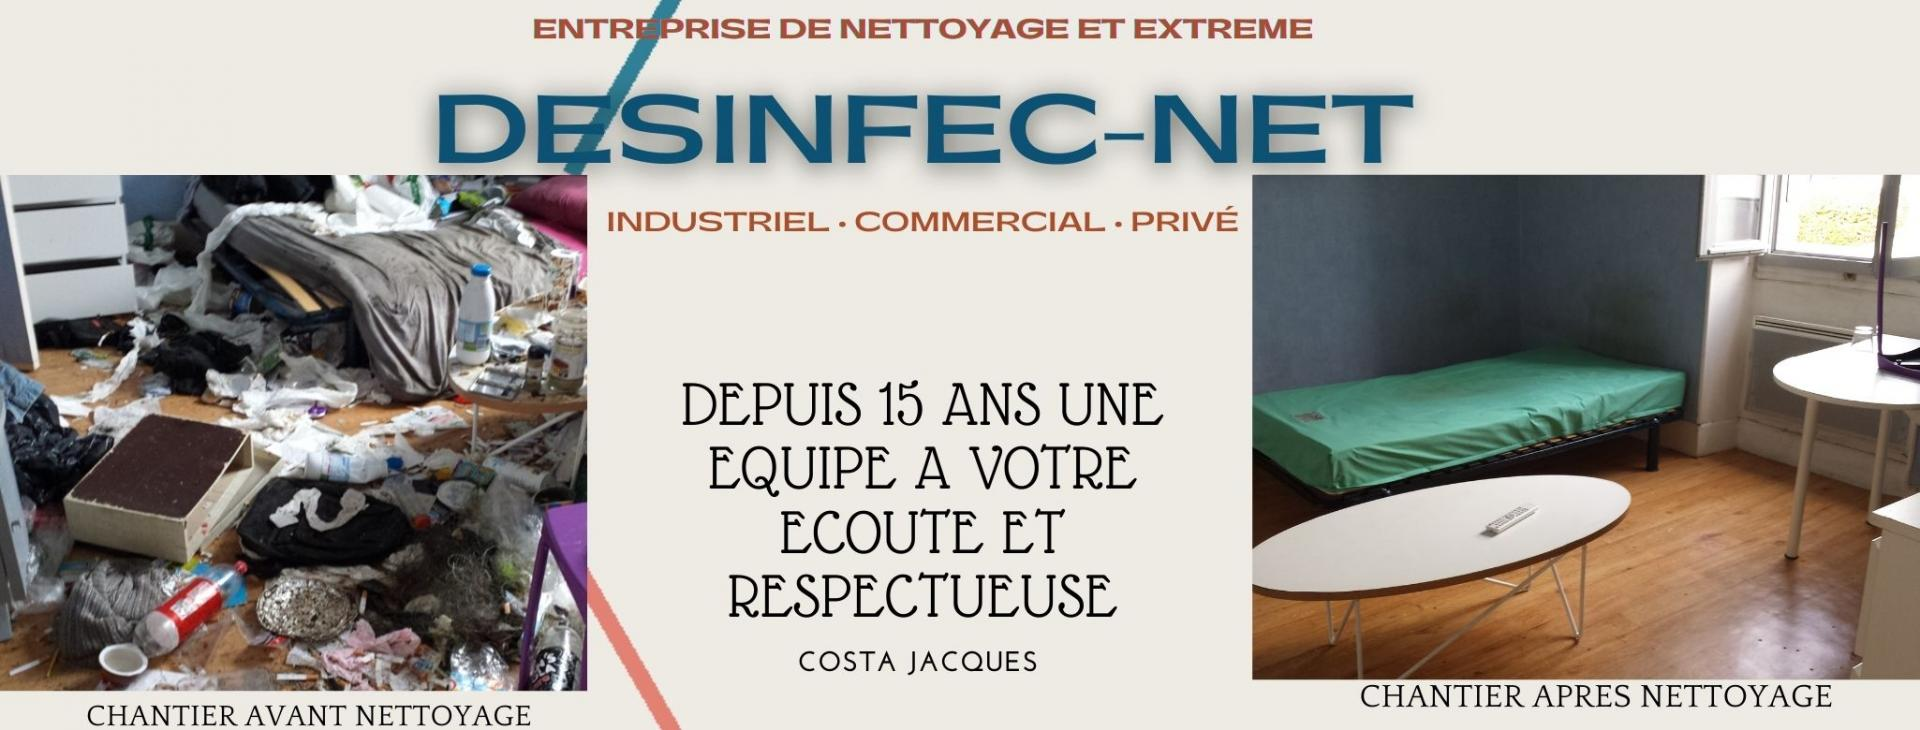 jacques costa nettoyage et desinfection